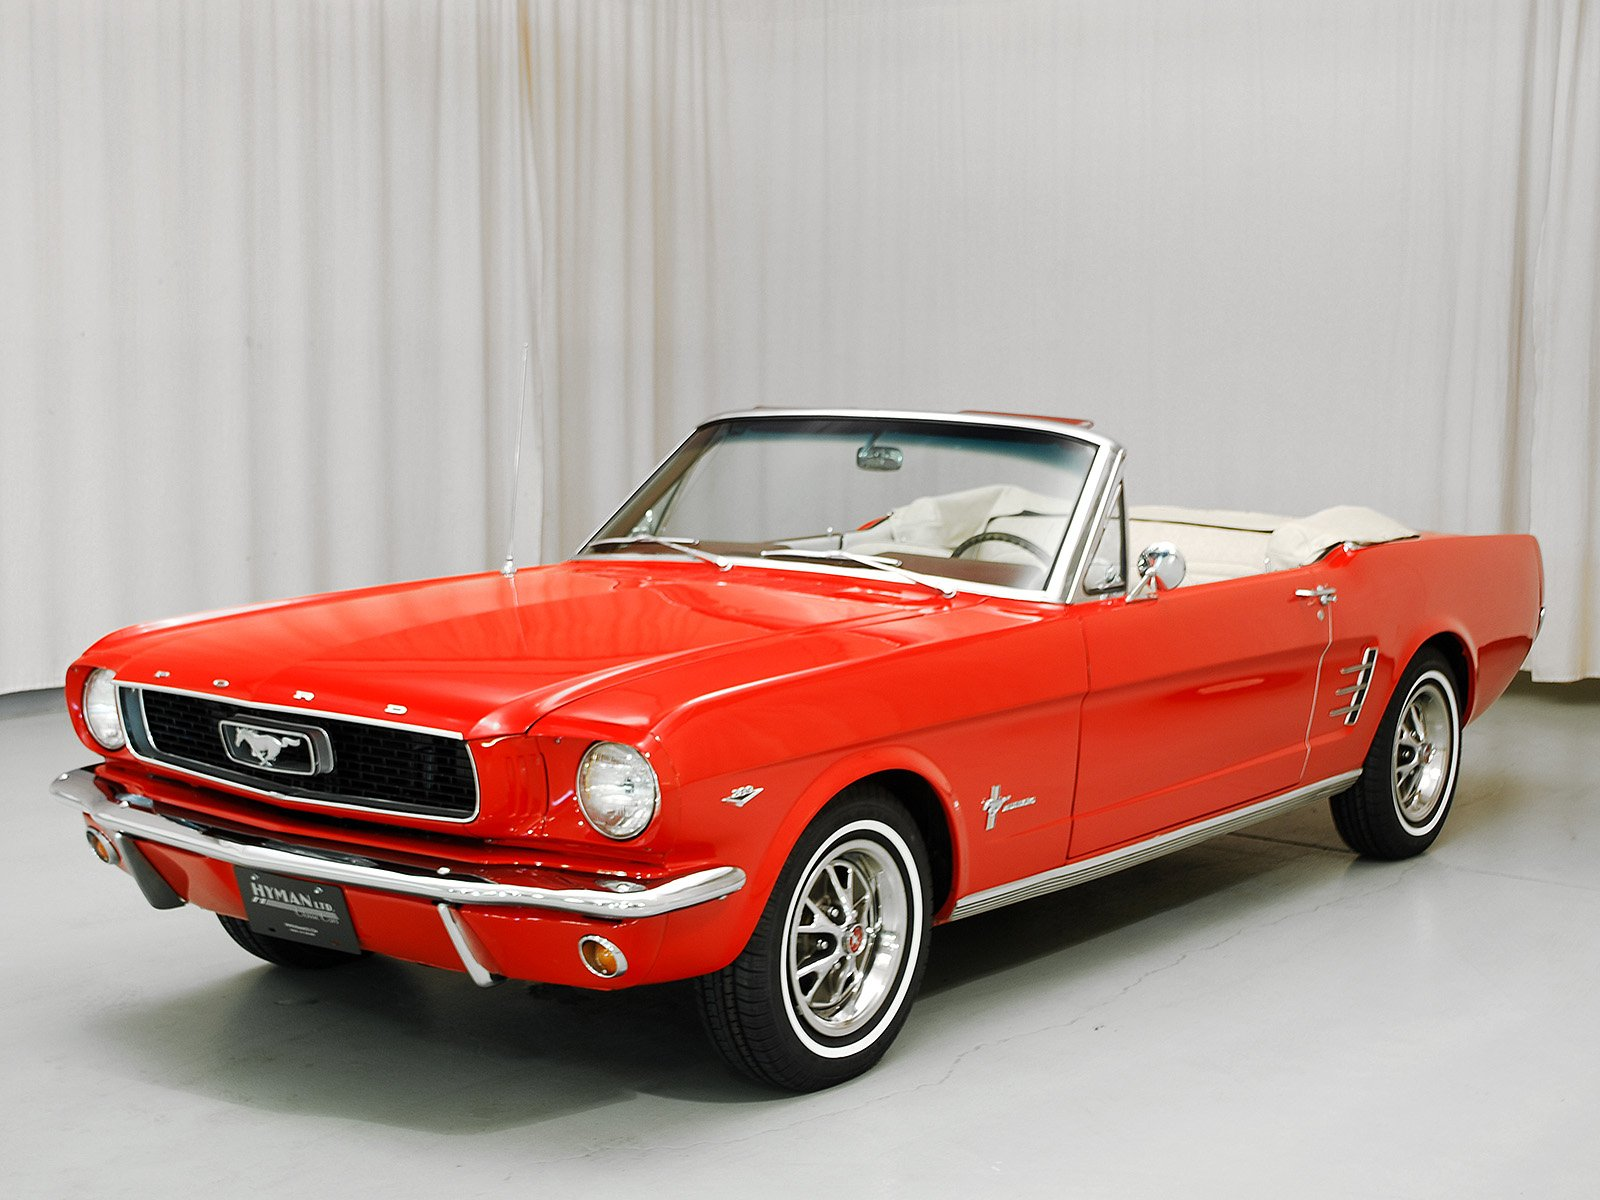 Was There A 1963 Mustang